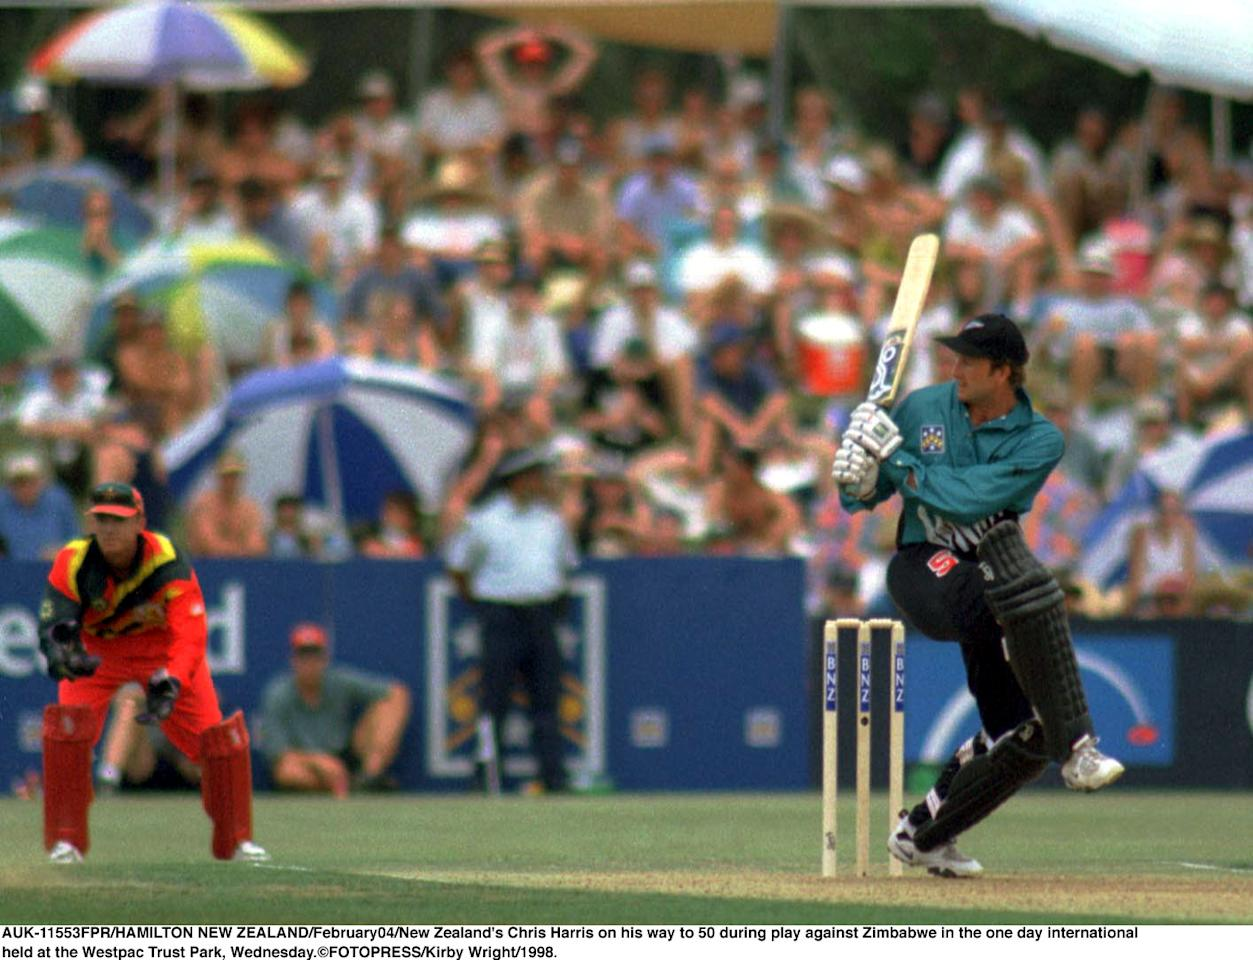 NEW ZEALAND - FEBRUARY 04:  New Zealand's Chris Harris on his way to 50 during play against Zimbabwe in the one day international held at the Westpac Trust Park, Wednesday.  (Photo by Kirby Wright/Getty Images)